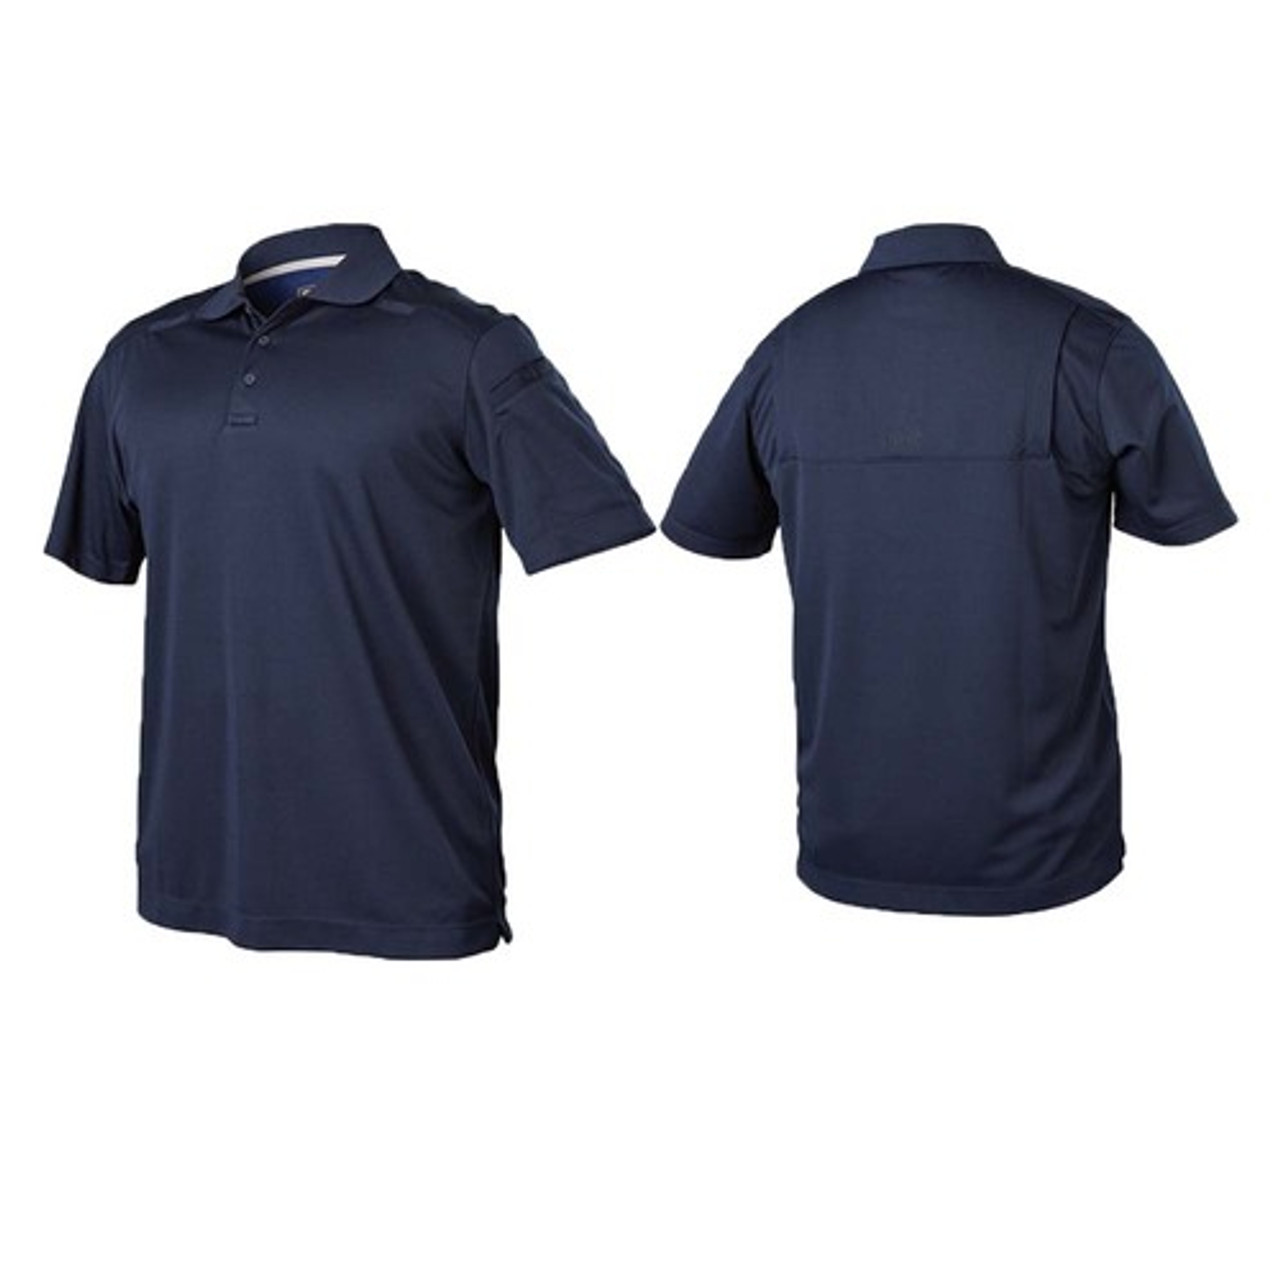 BLACKHAWK RANGE POLO, PO01, 100% Performance Polyester, Casual/Uniform, Vented Back, Sternum and Shoulder Loops